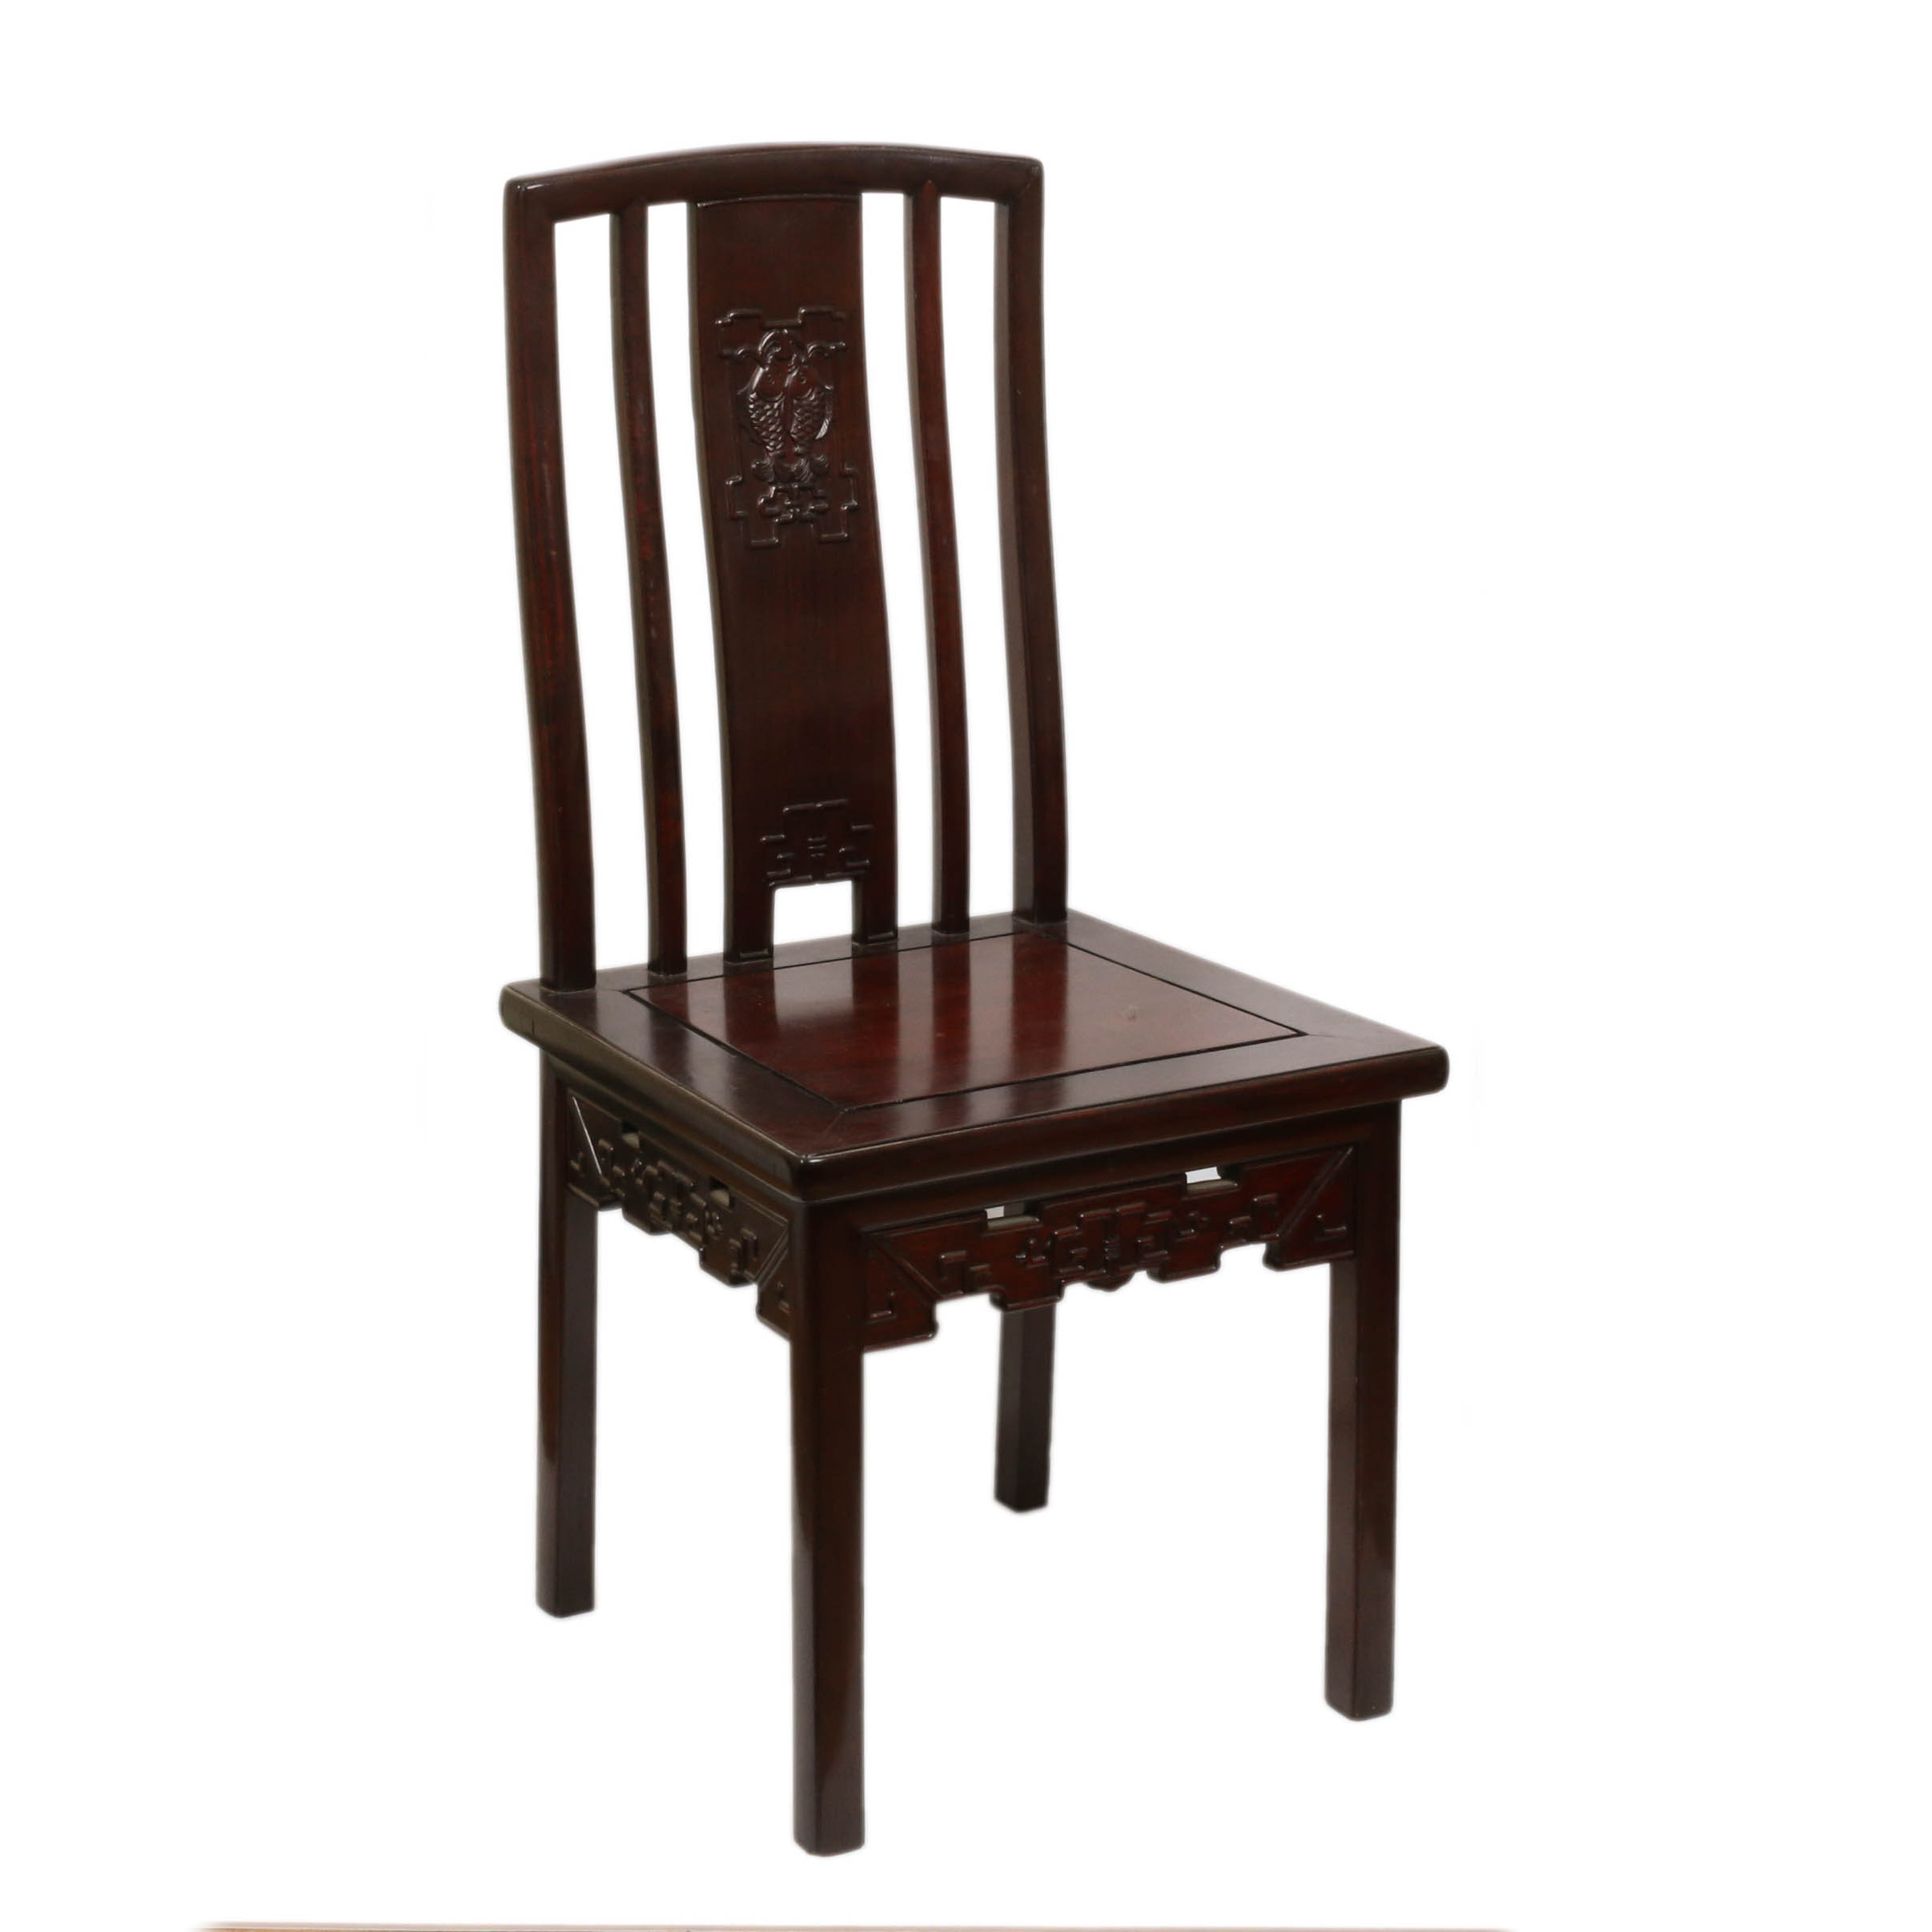 Chinese Mahogany Side Chair, Mid-20th Century